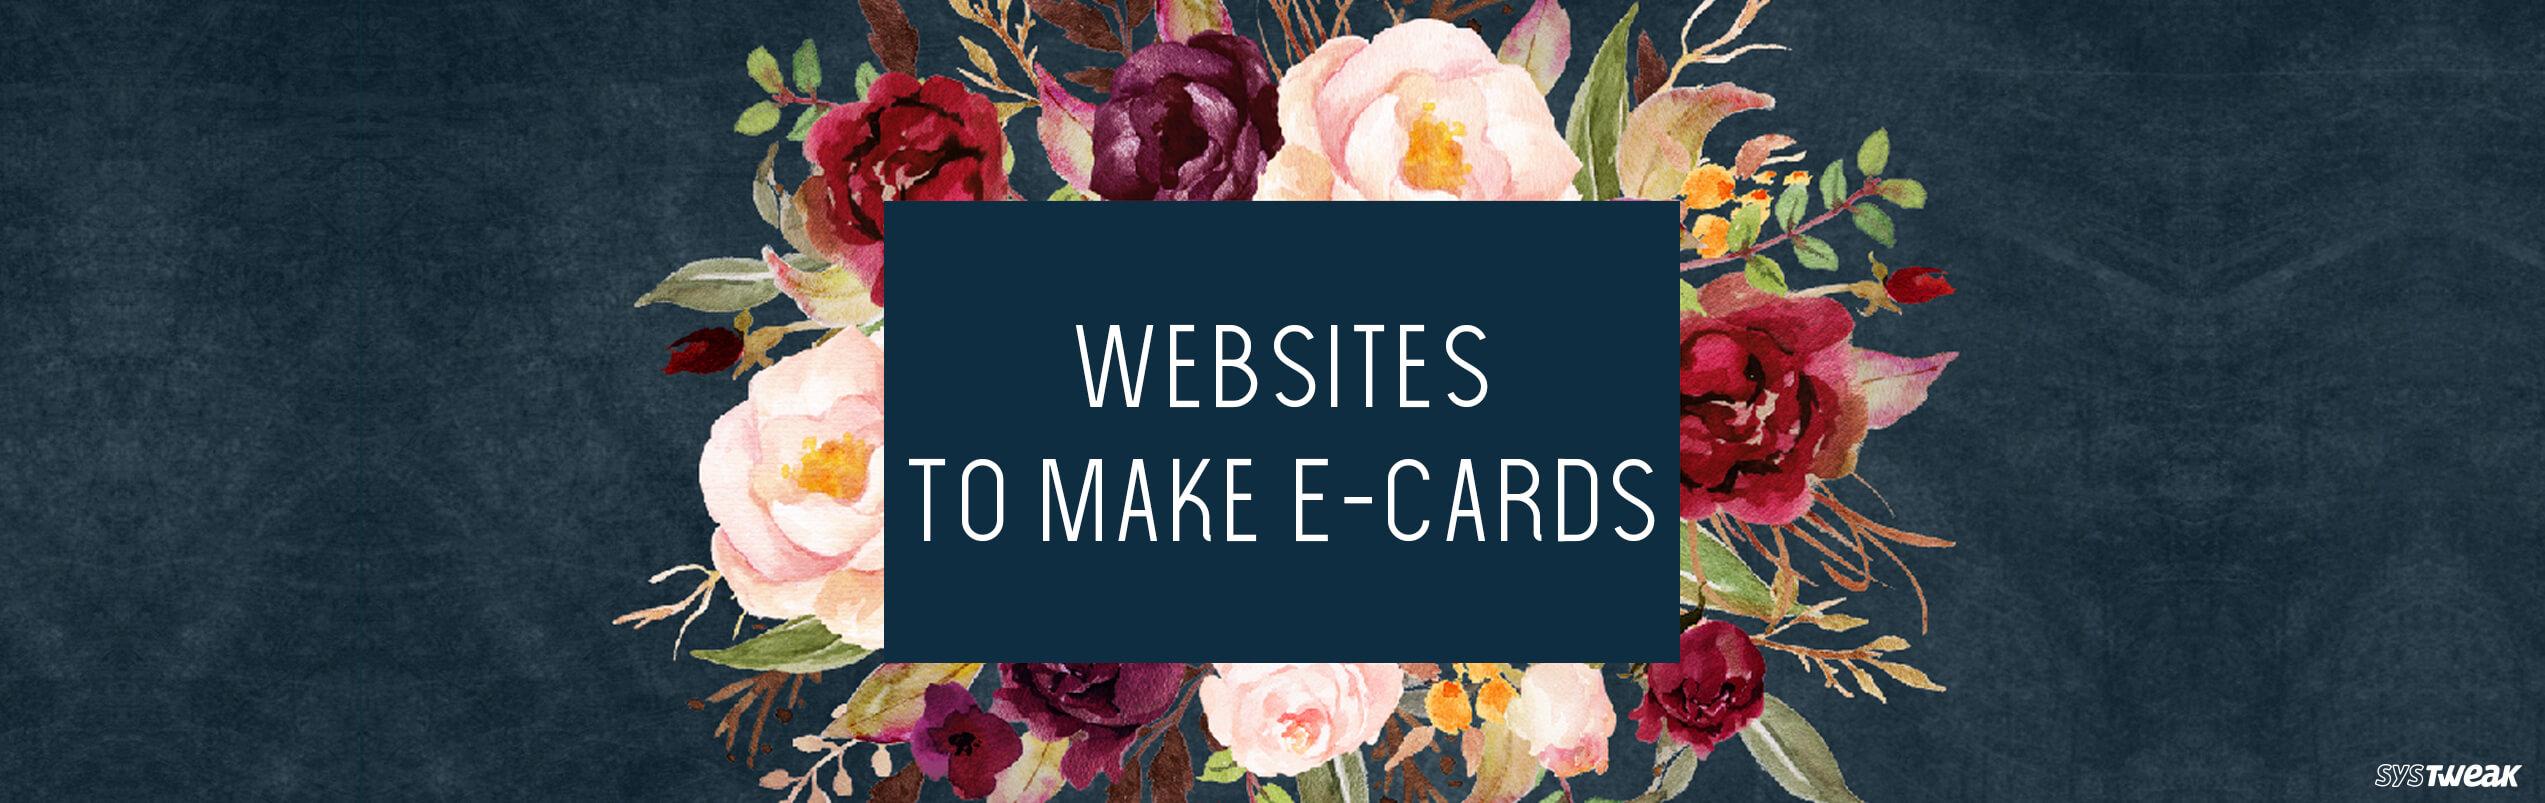 5 best online e card making websites - Card Making Websites